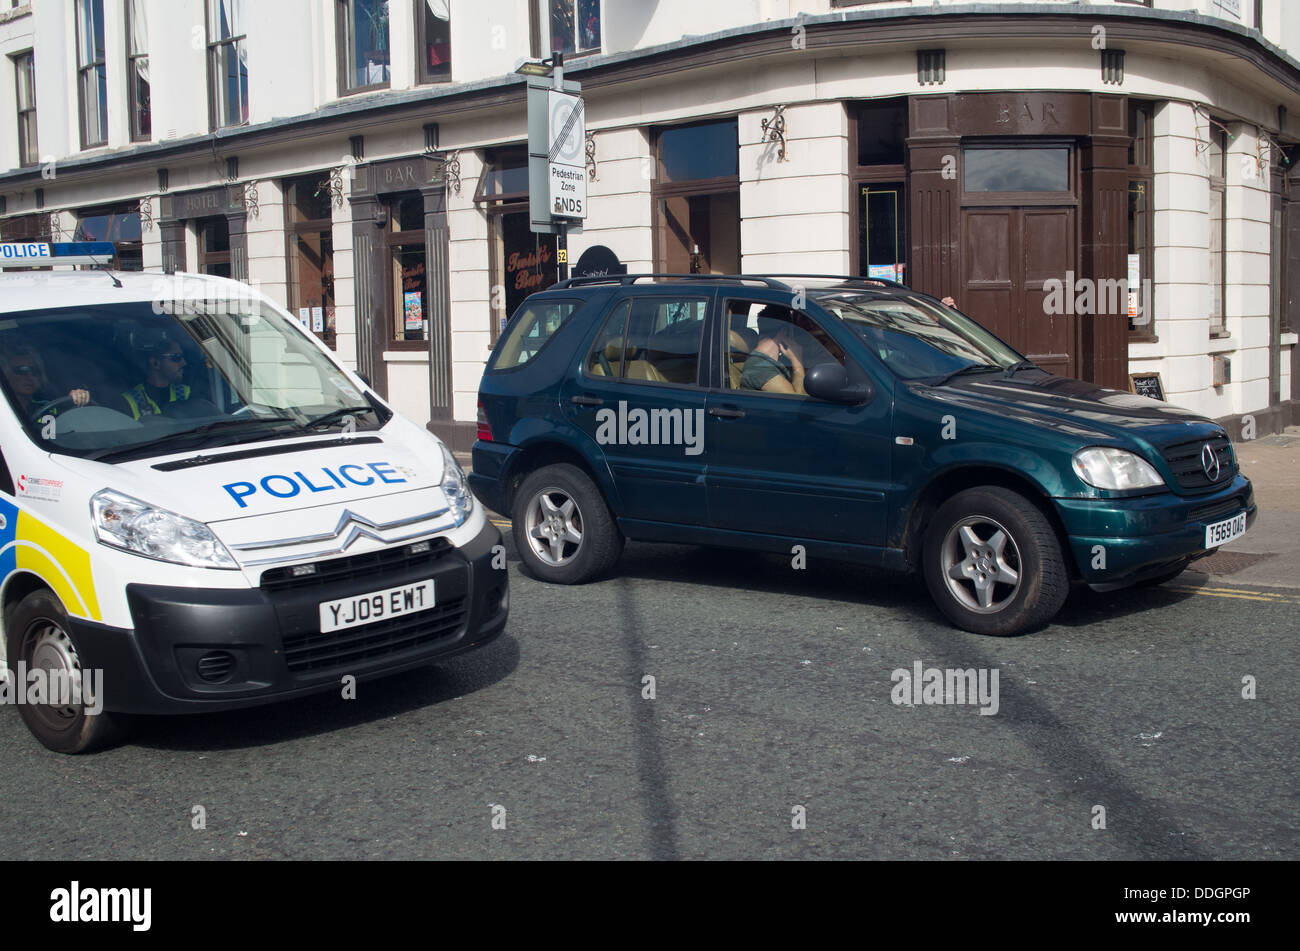 Police van drives past illegally parked 4X4 on double yellow lines - Stock Image